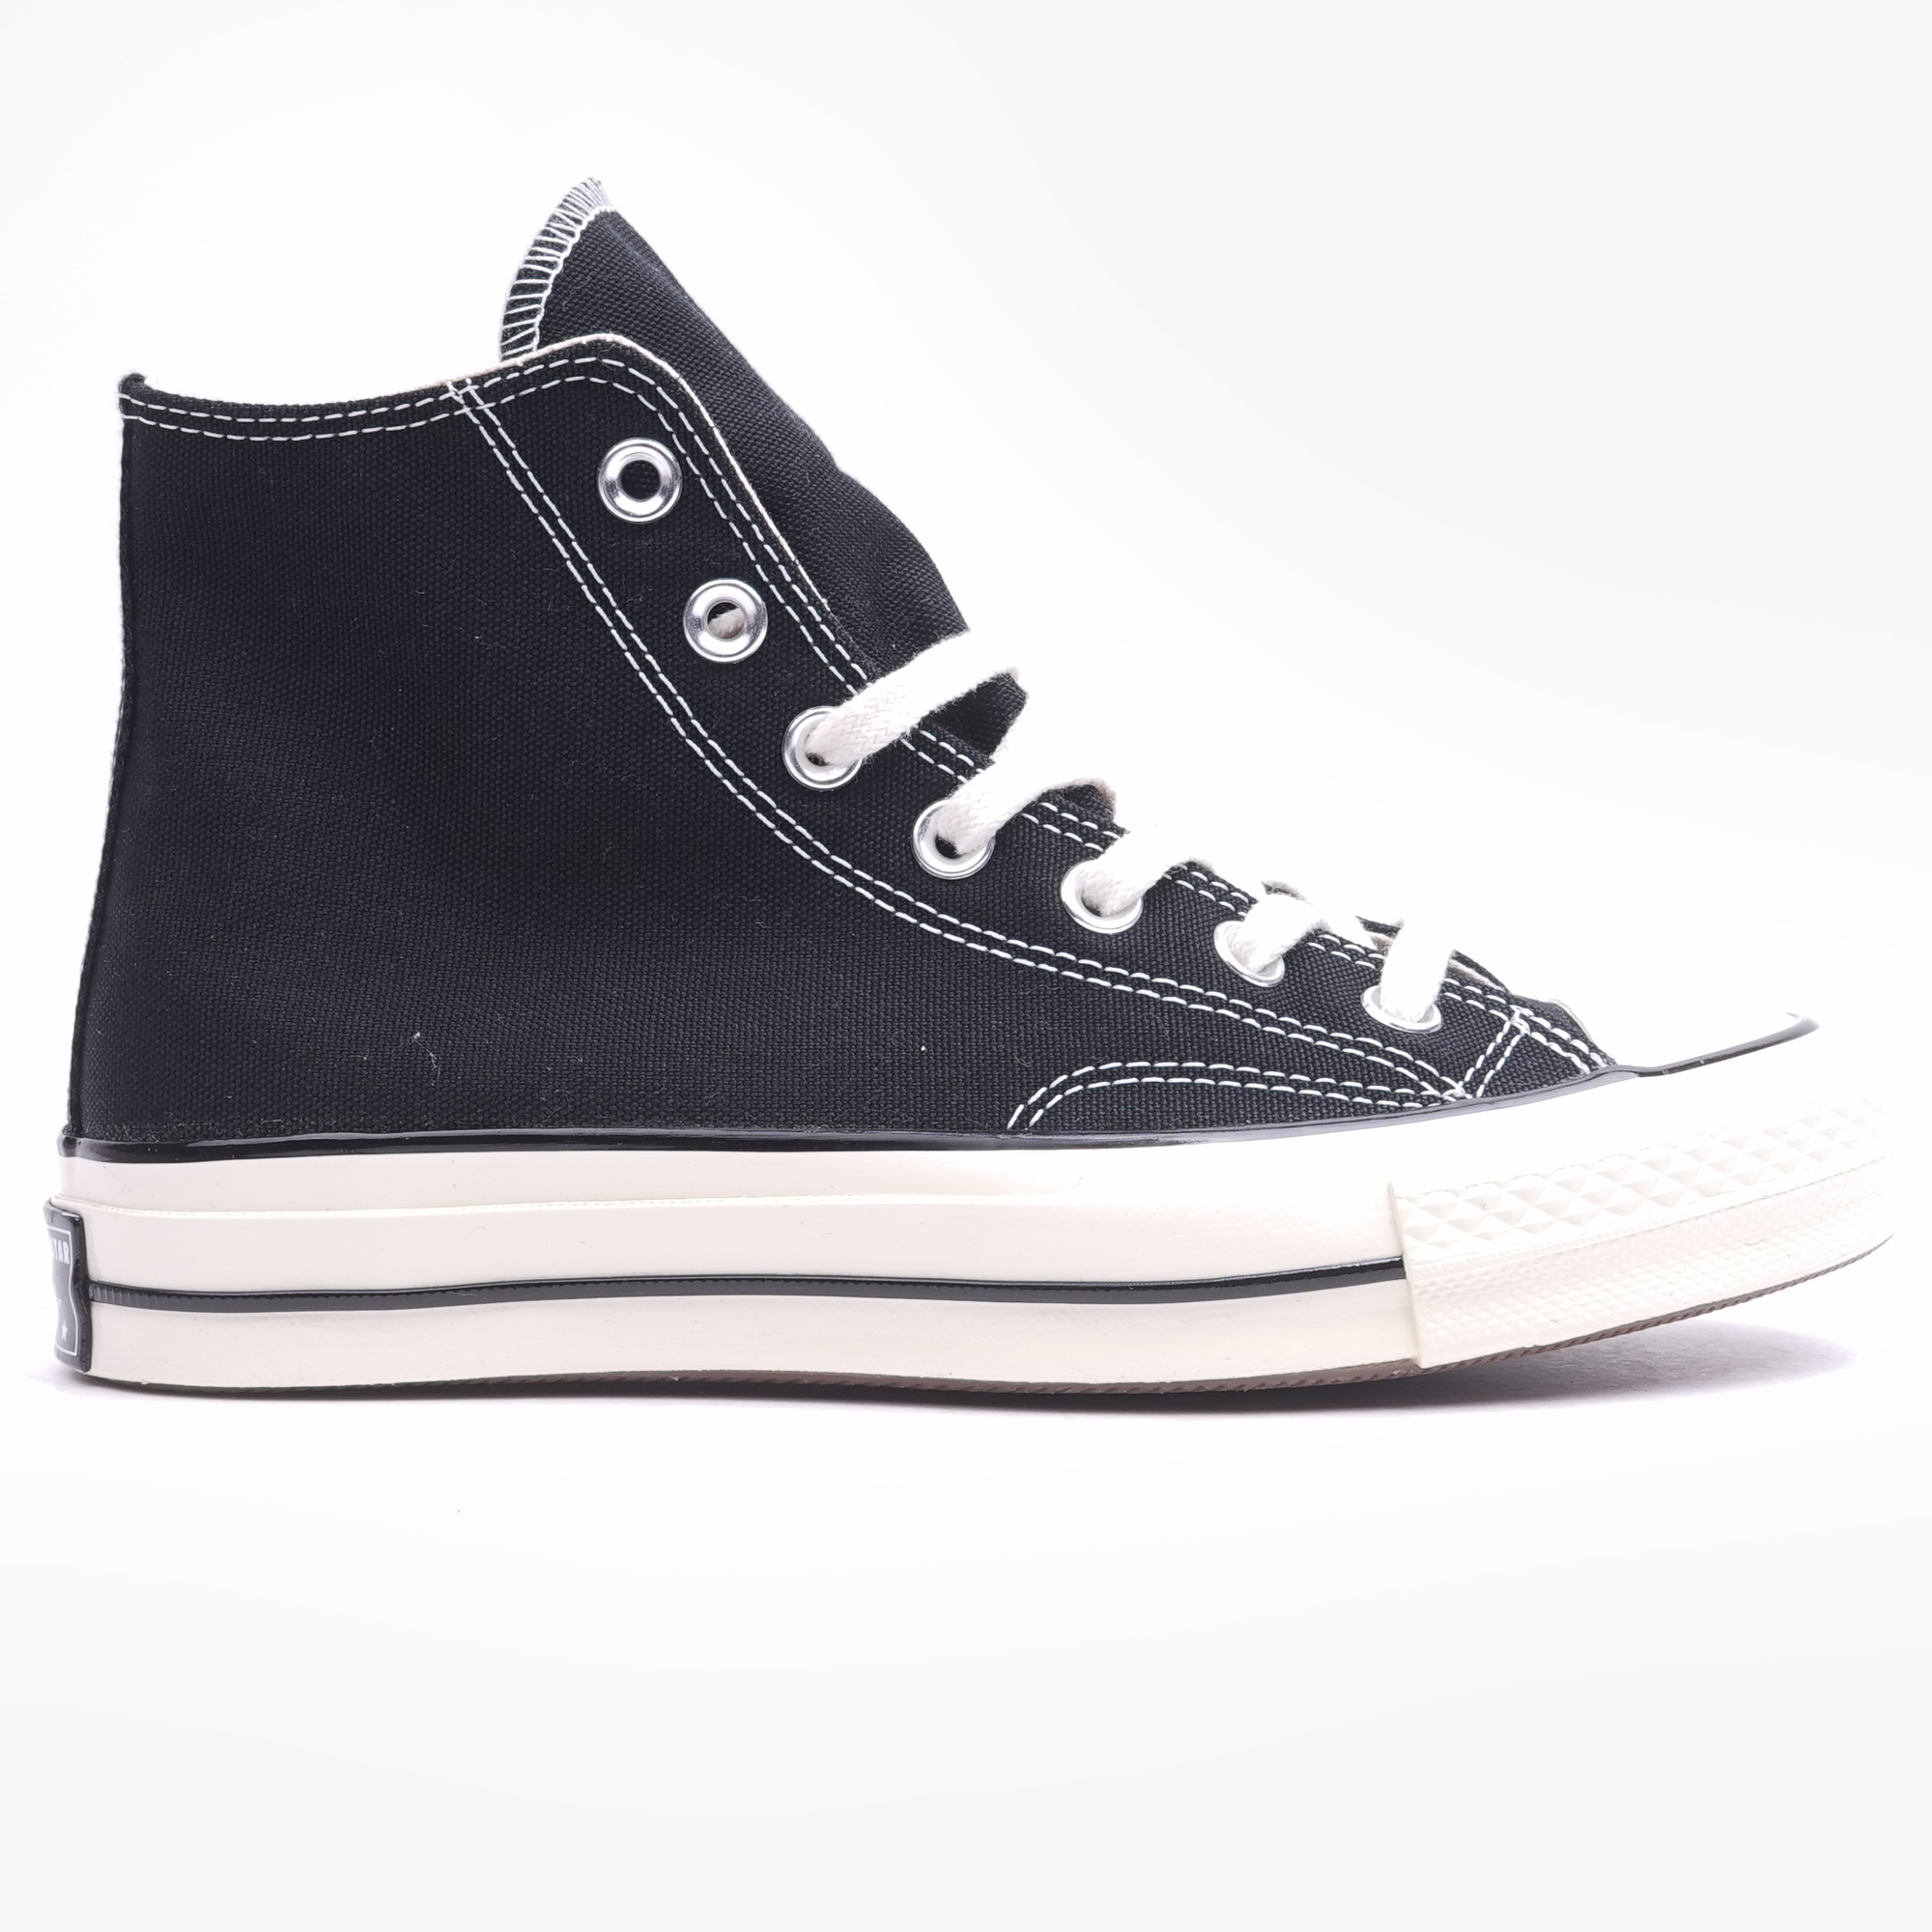 a6075085037f Converse Chuck Taylor All Star 70 High Black - Slash Store